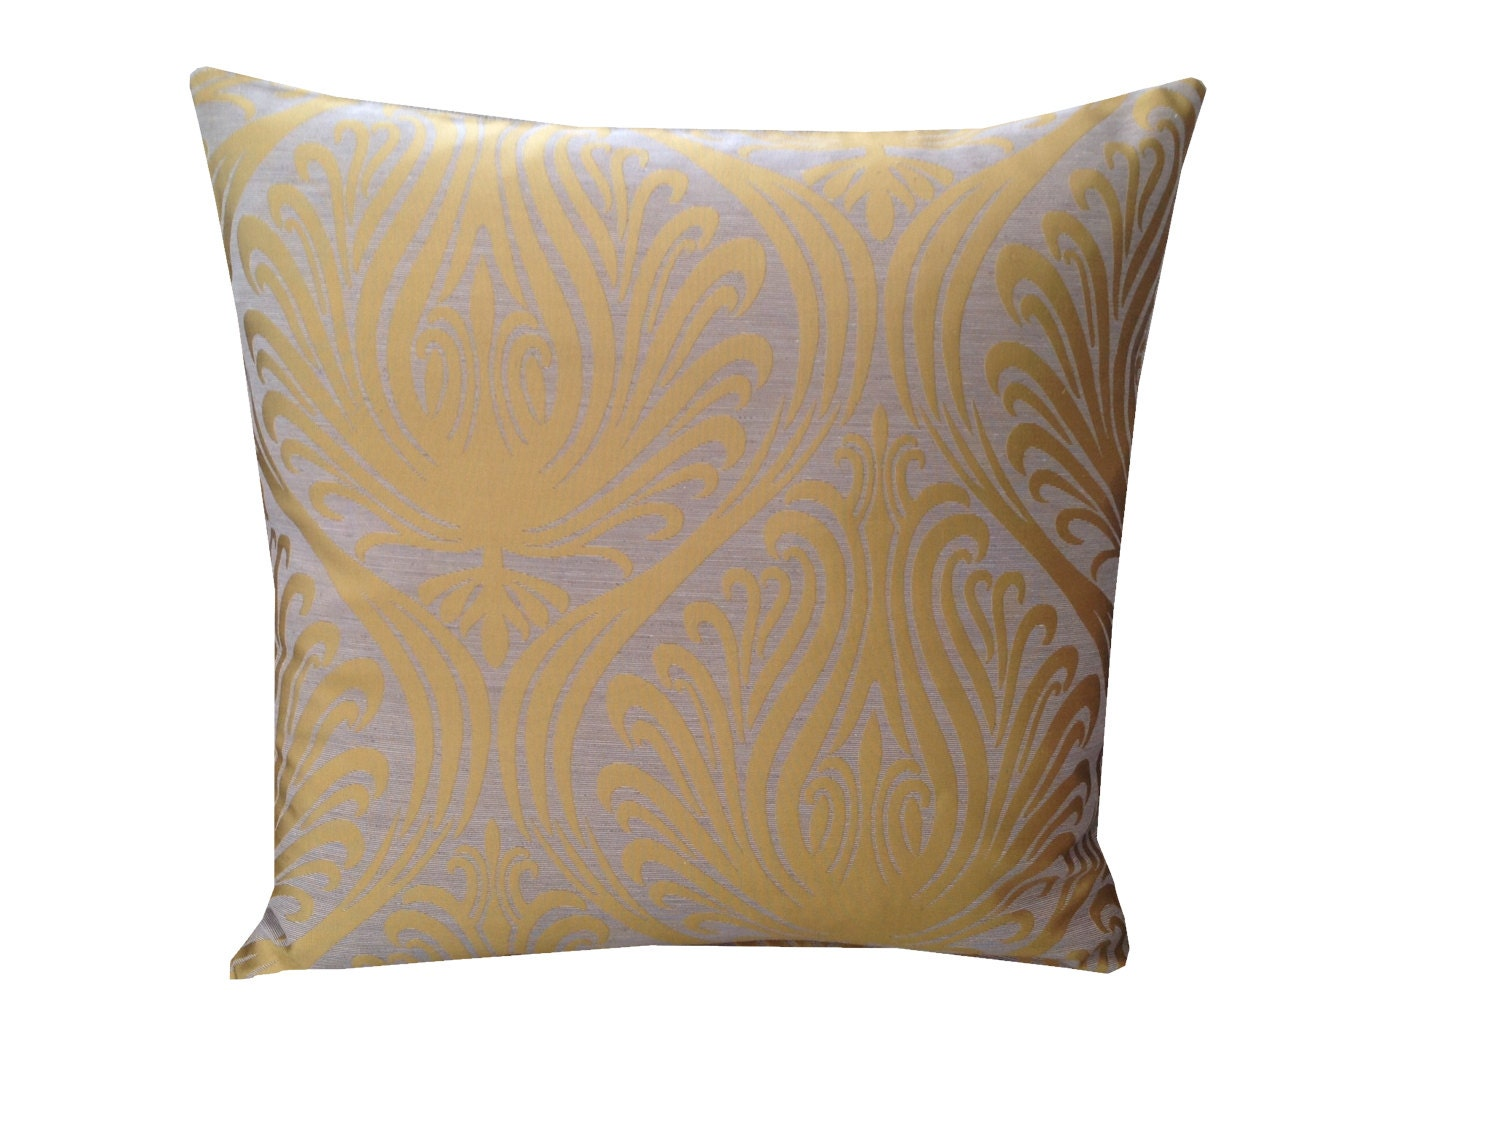 Stunning Gold Cream  Mustard classic damask design hand made cushion cover pillow case made from faux silk fabric homesofaloungekitchen